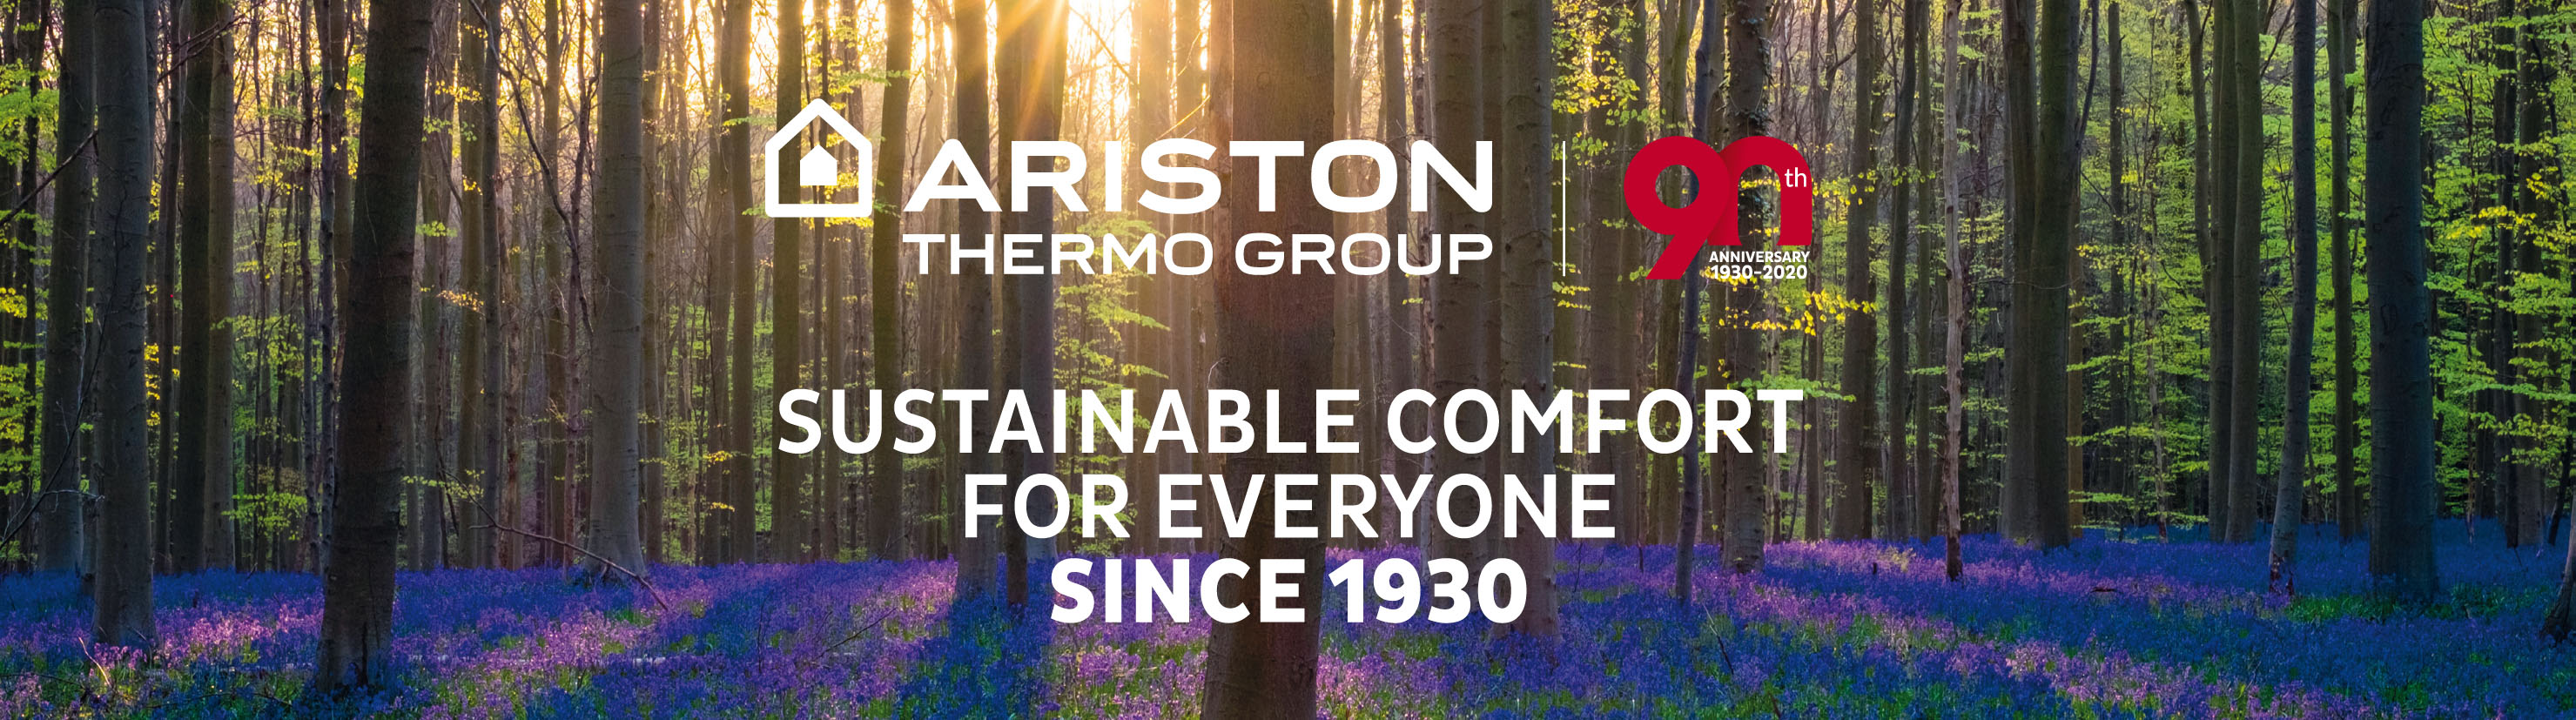 Elco Burners ARISTON THERMO GROEP 90 JAAR